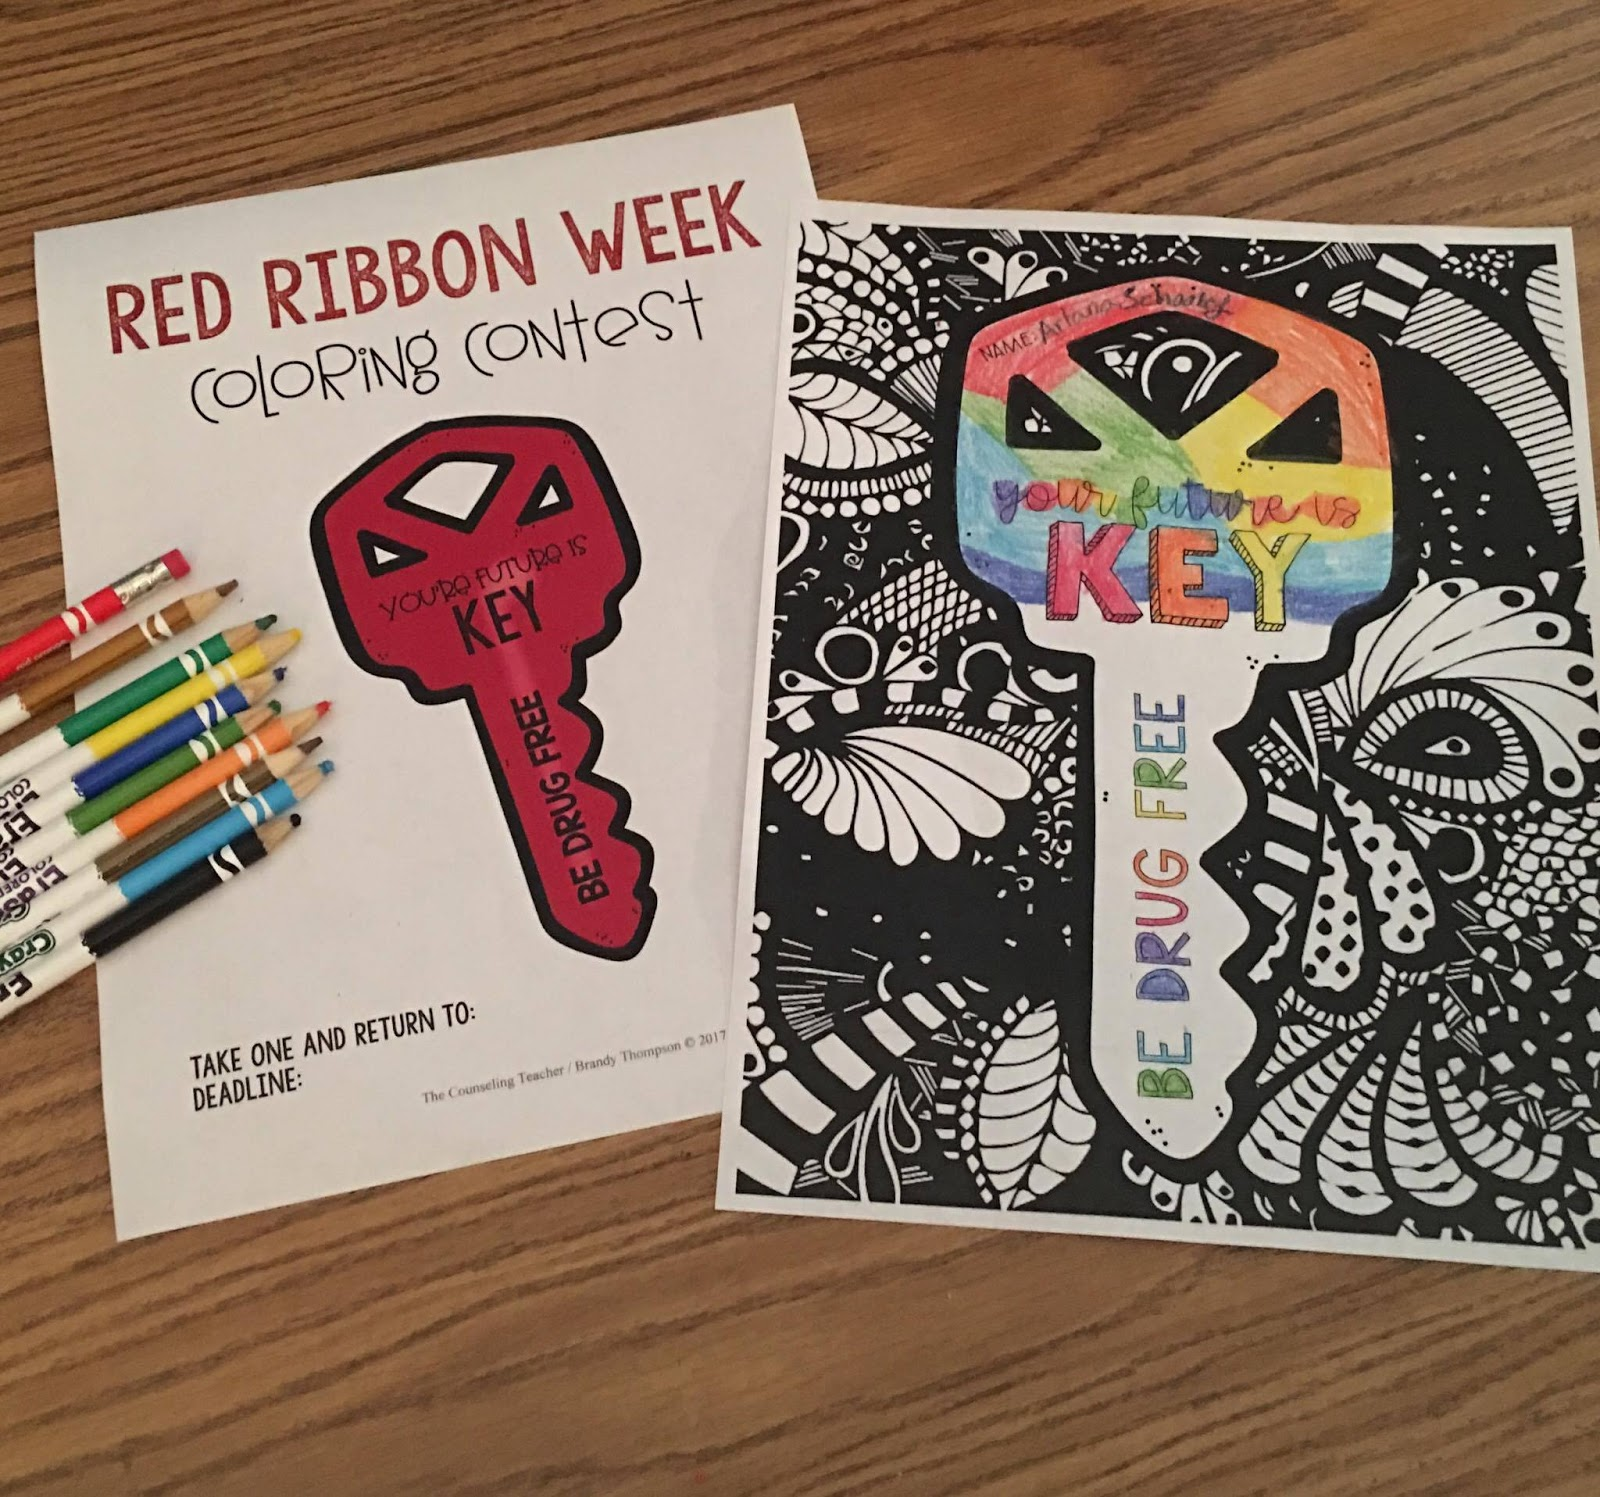 Red Ribbon Week Activities: Free Printable Coloring Contest - The